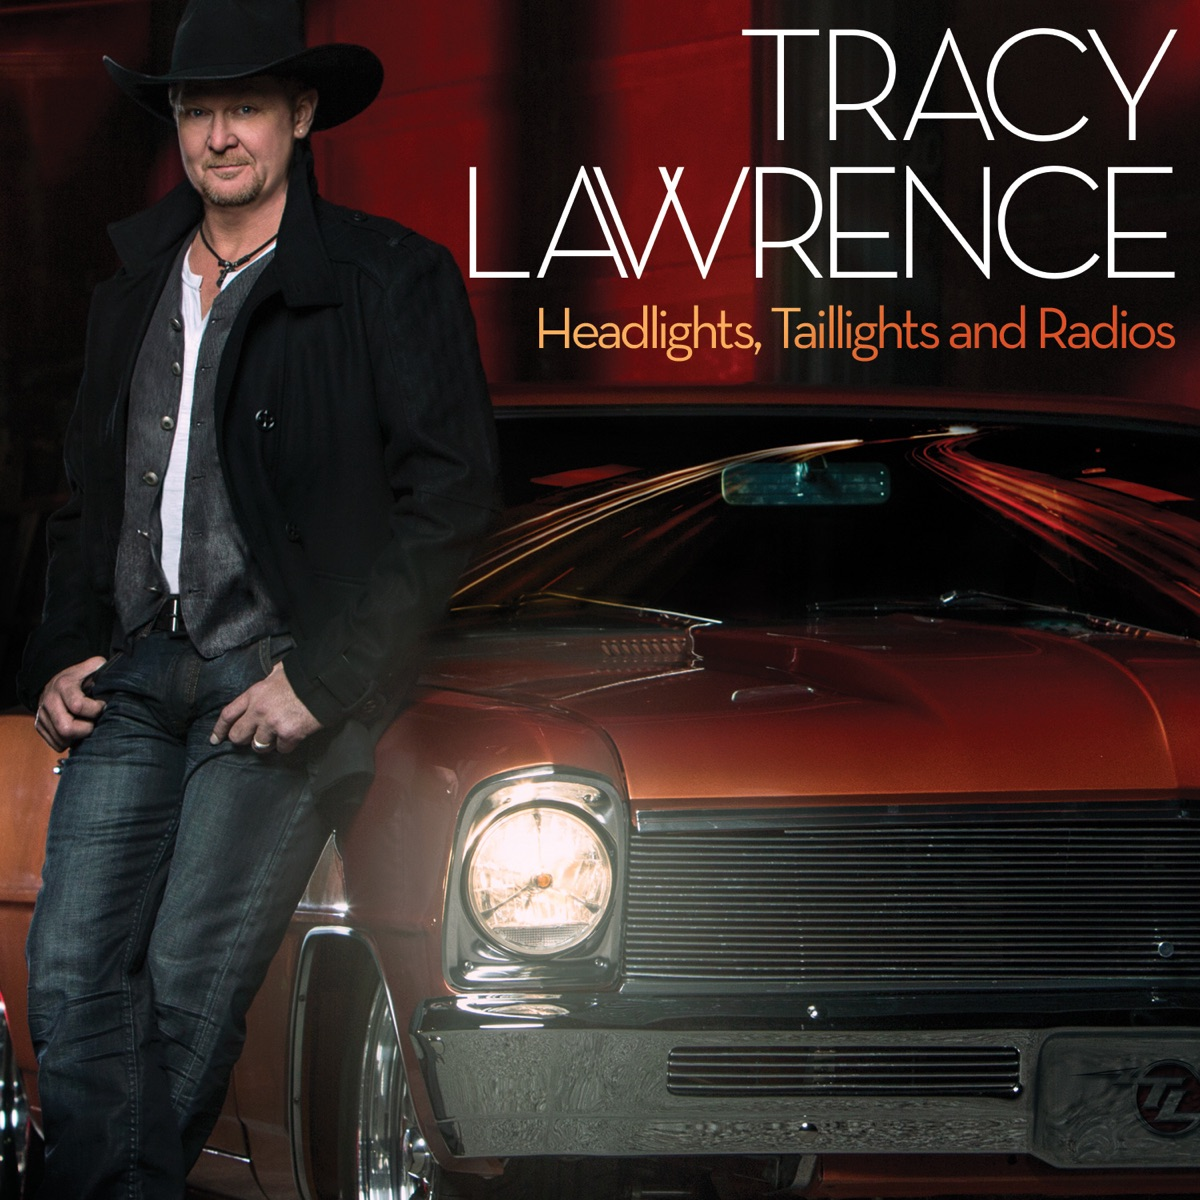 Headlights Taillights and Radios Tracy Lawrence CD cover